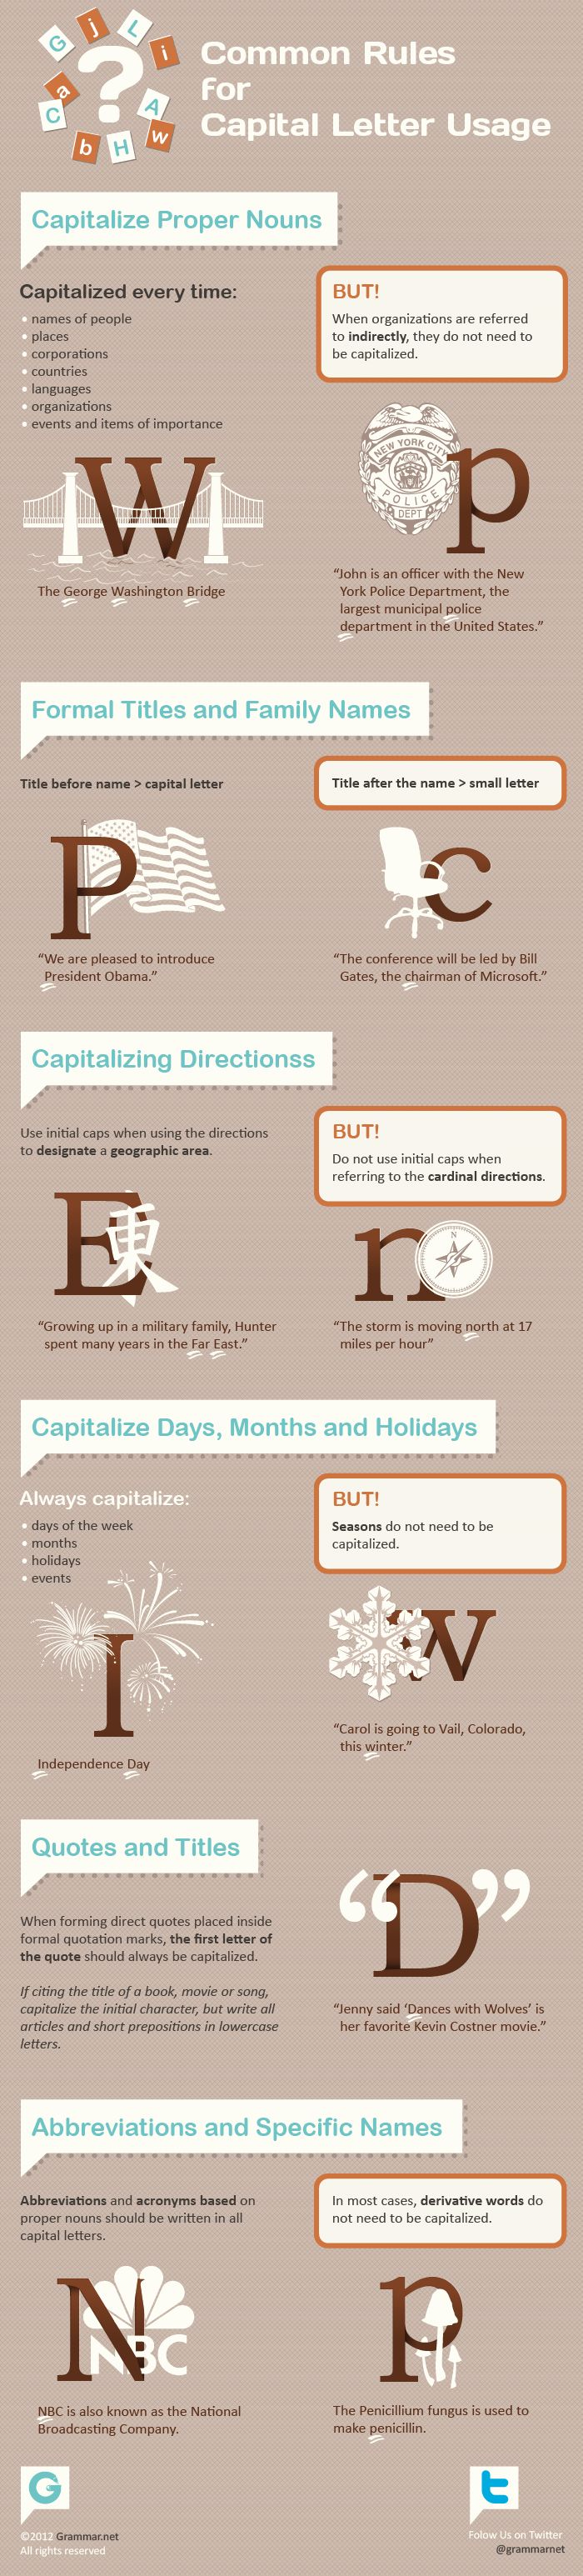 "Rules for capitalization vary by country, language and word usage. Simple rules for capitalizing proper nouns and writing the pronoun ""I"" in capit: Capital Letters, Teaching, Schools, Letters Usage, Common Rules, Education, English Grammar, Capitals Letters, Usag Infographic"